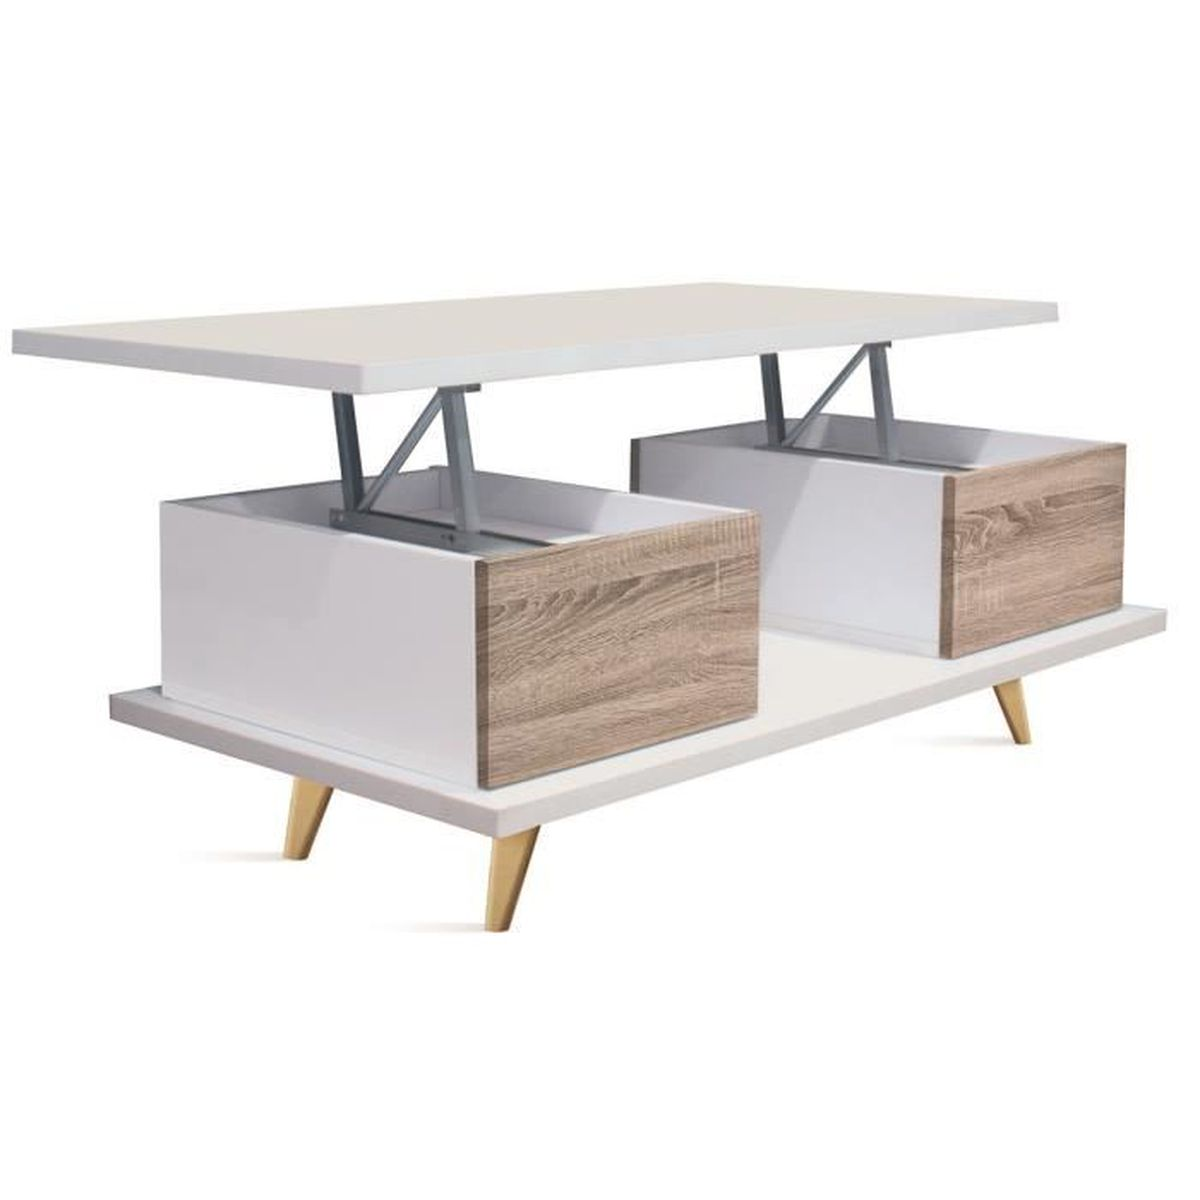 Table basse relevable en bois coloris blanc cambrian for Table basse blanc bois